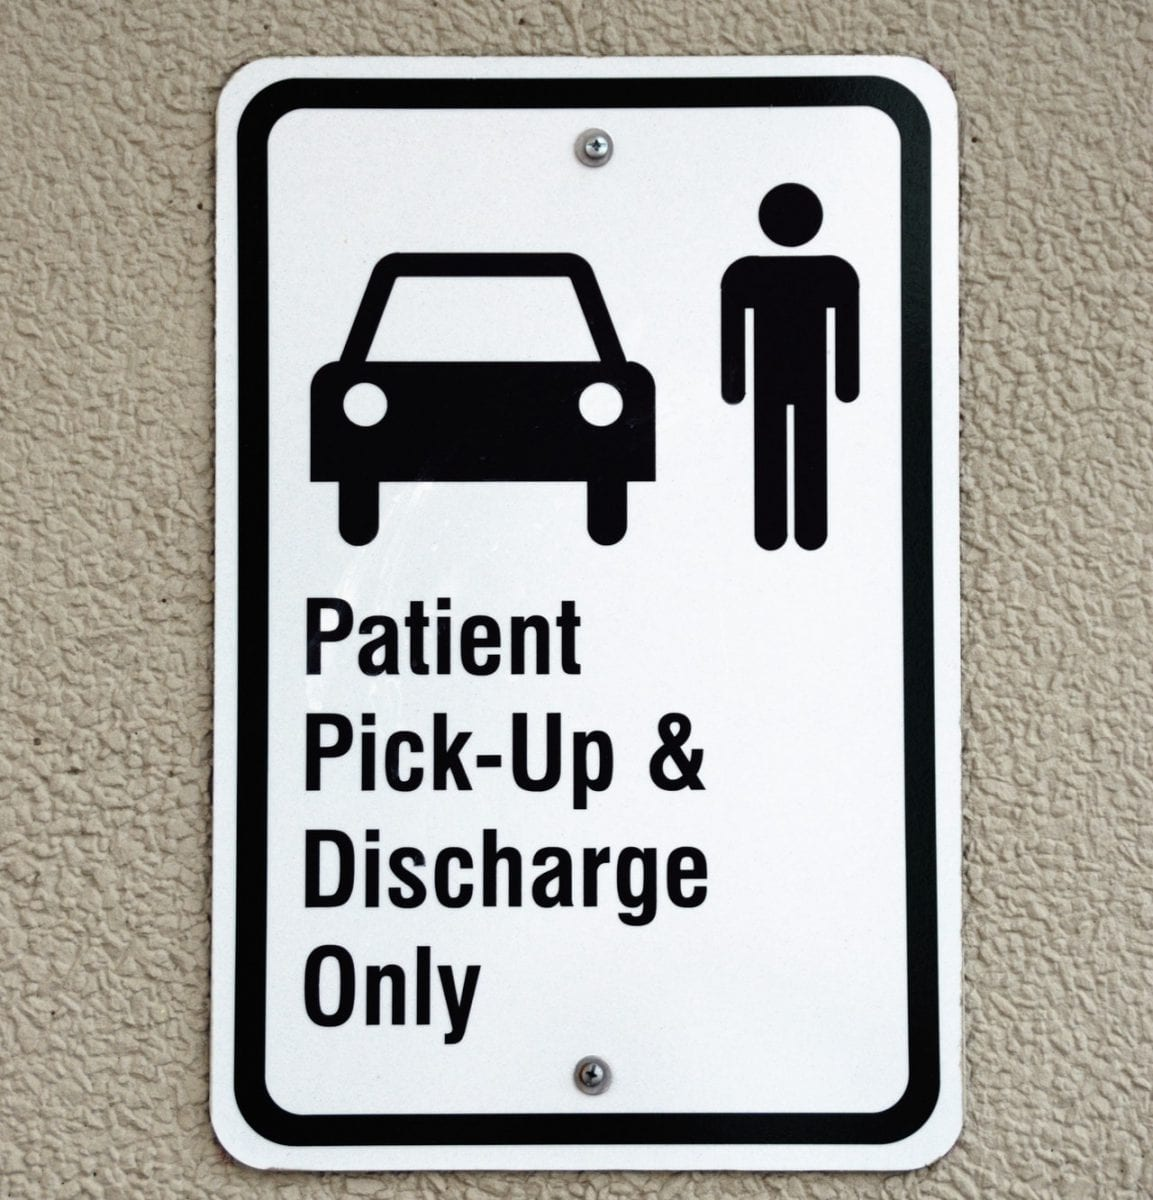 sign says patient pick up and discharge only